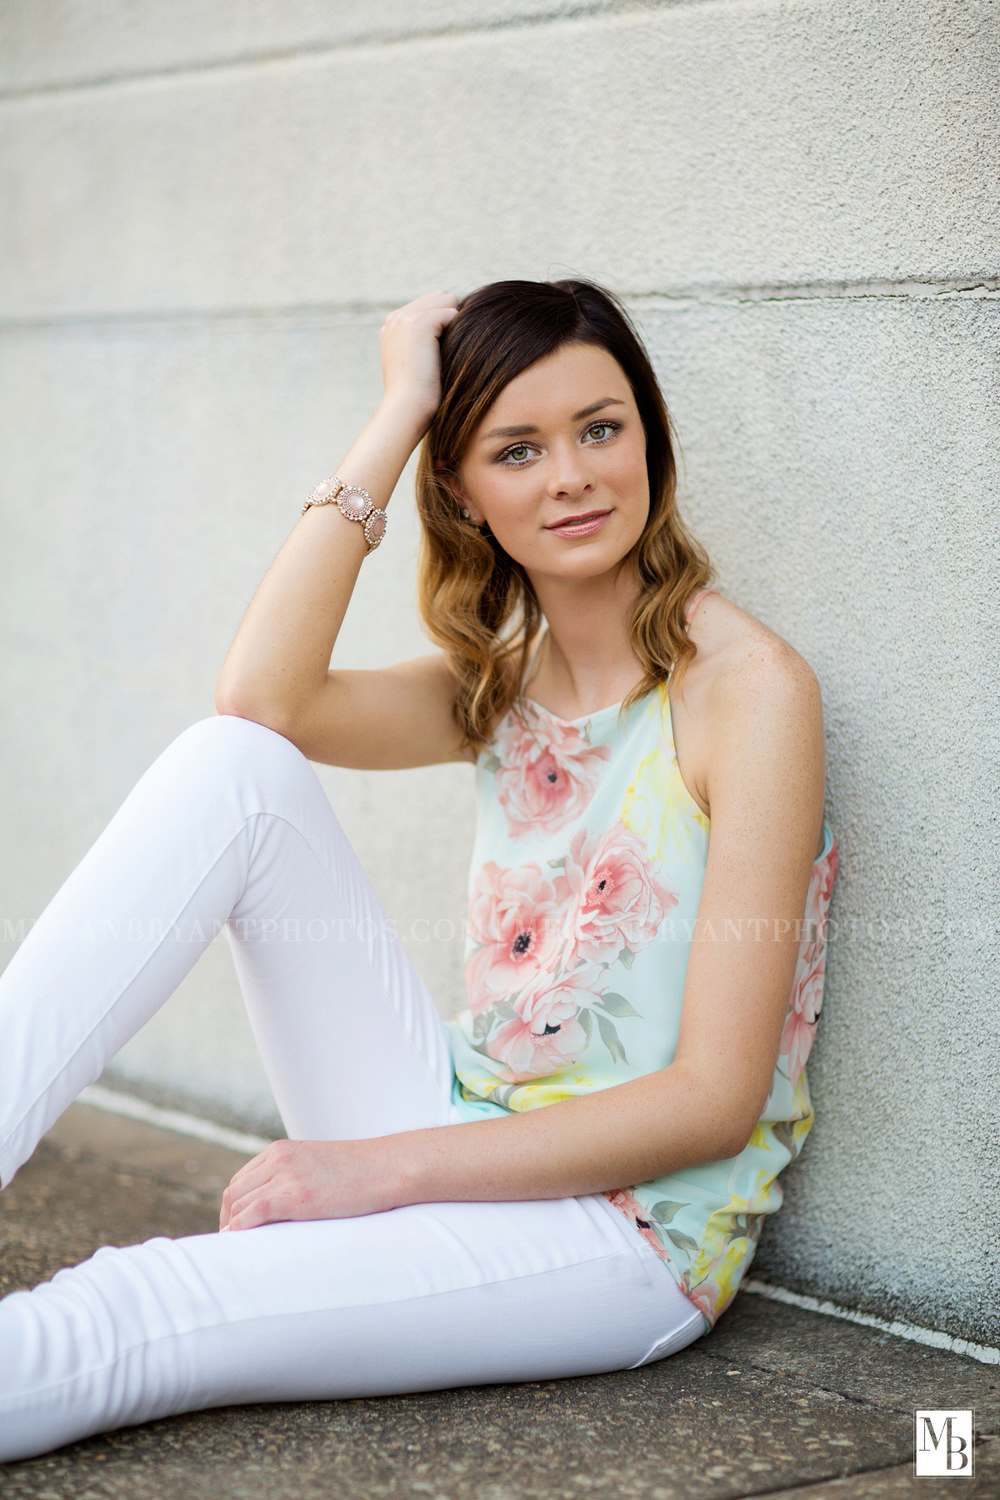 How about white denim? Lindsey nailed this outfit, giving these white jeans a dressy look by adding such a chic top!